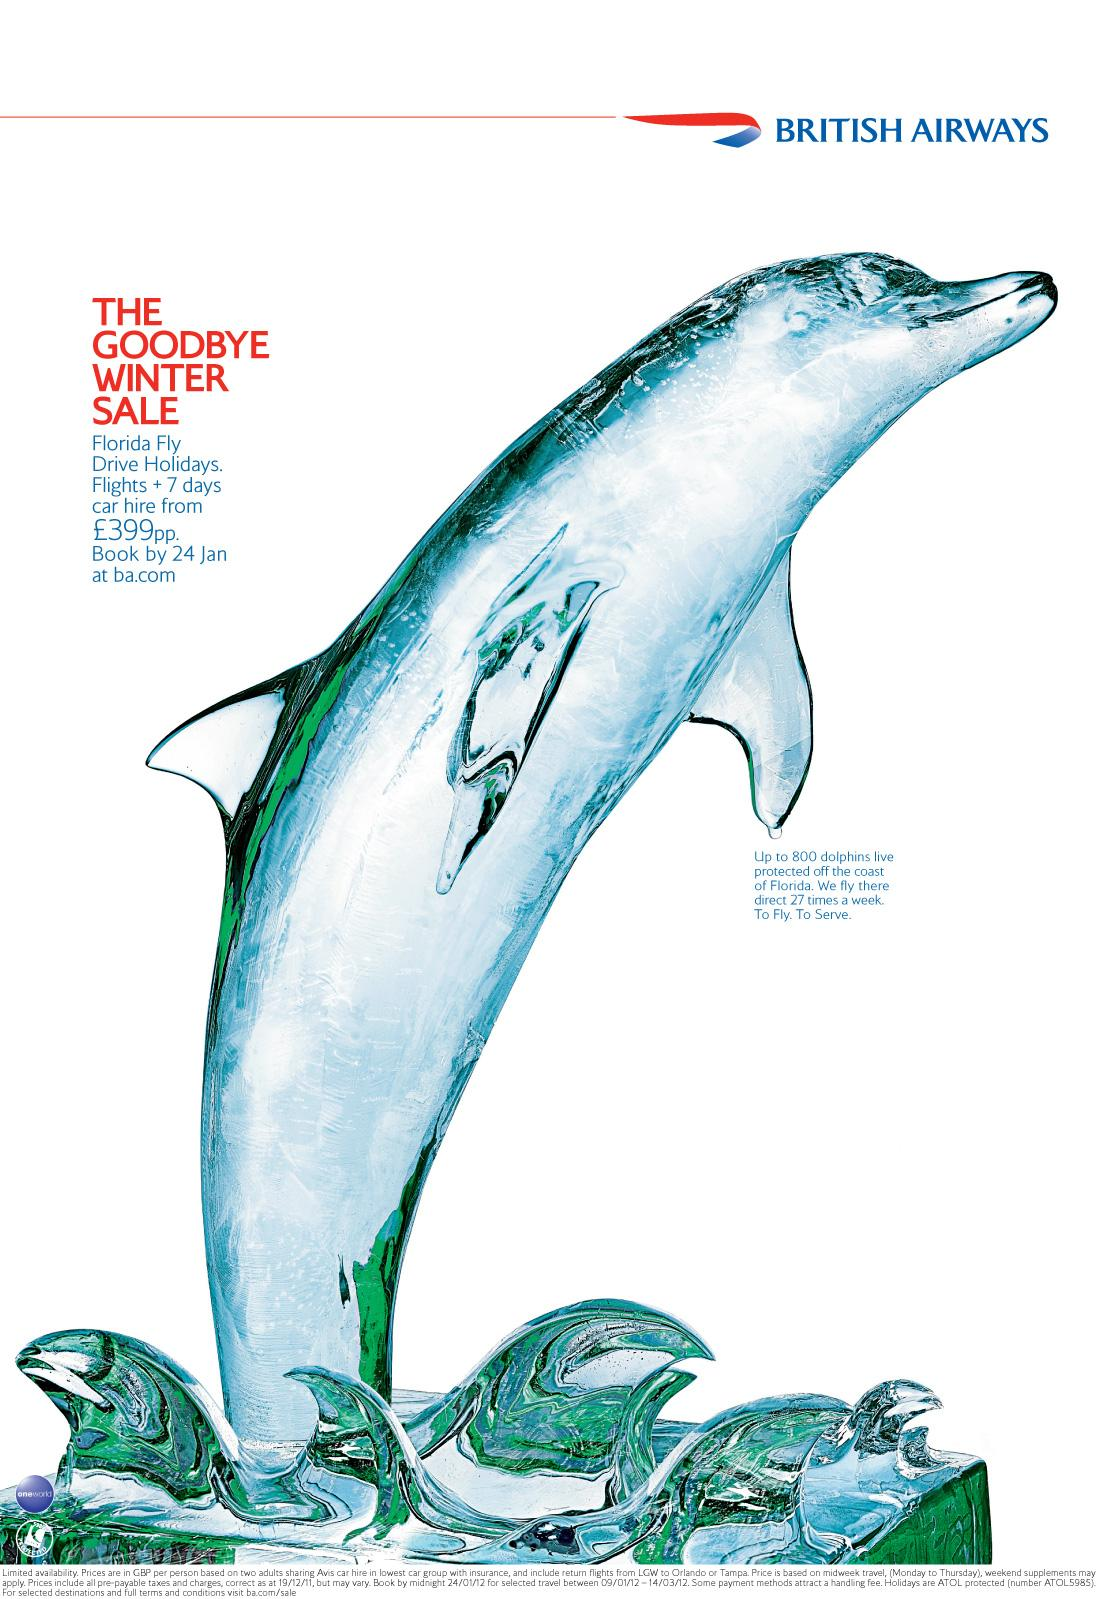 British Airways Print Ad -  January sale, Dolphin